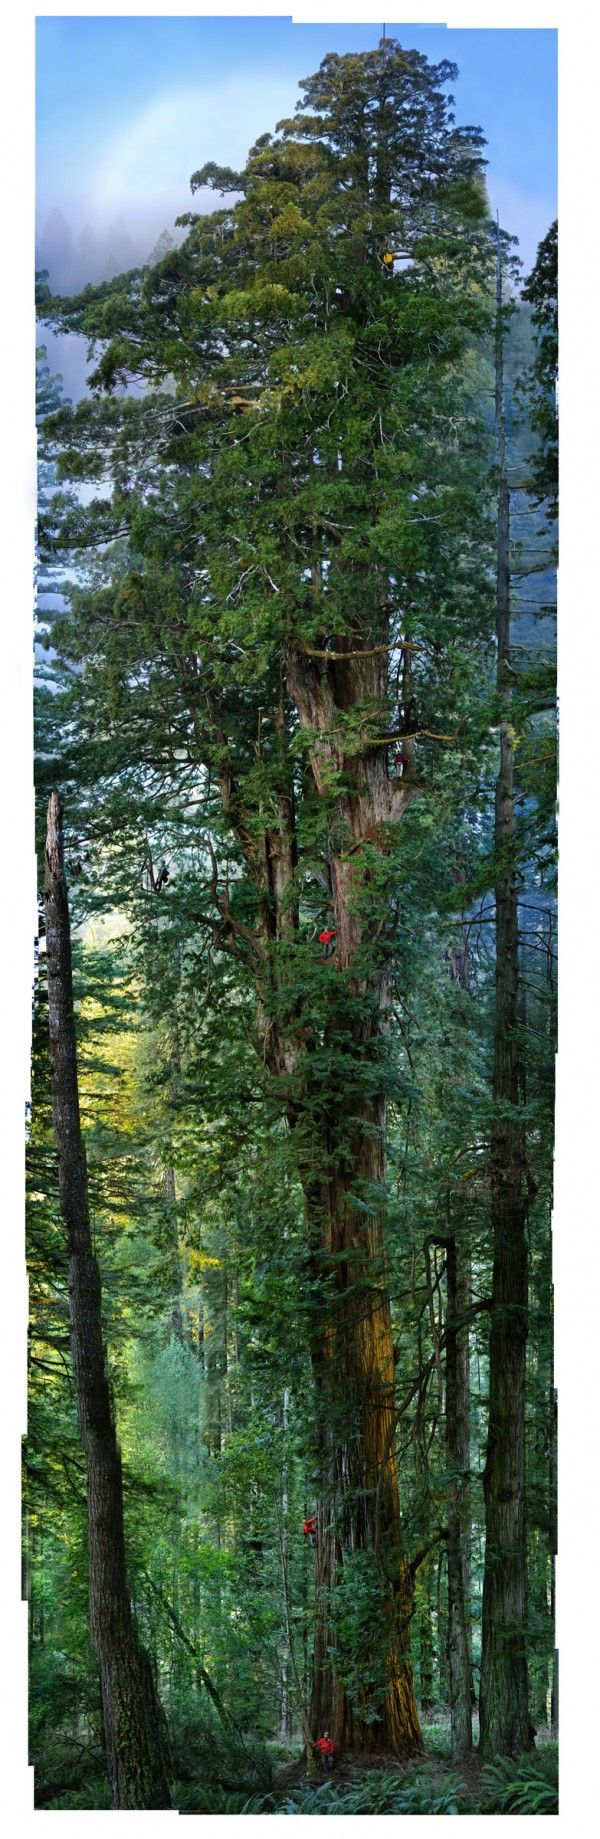 Redwood by Nick Nichols and National Geographic: 1,600 year old redwood captured by stitching 84 photos taken by three cameras on a robotized rig